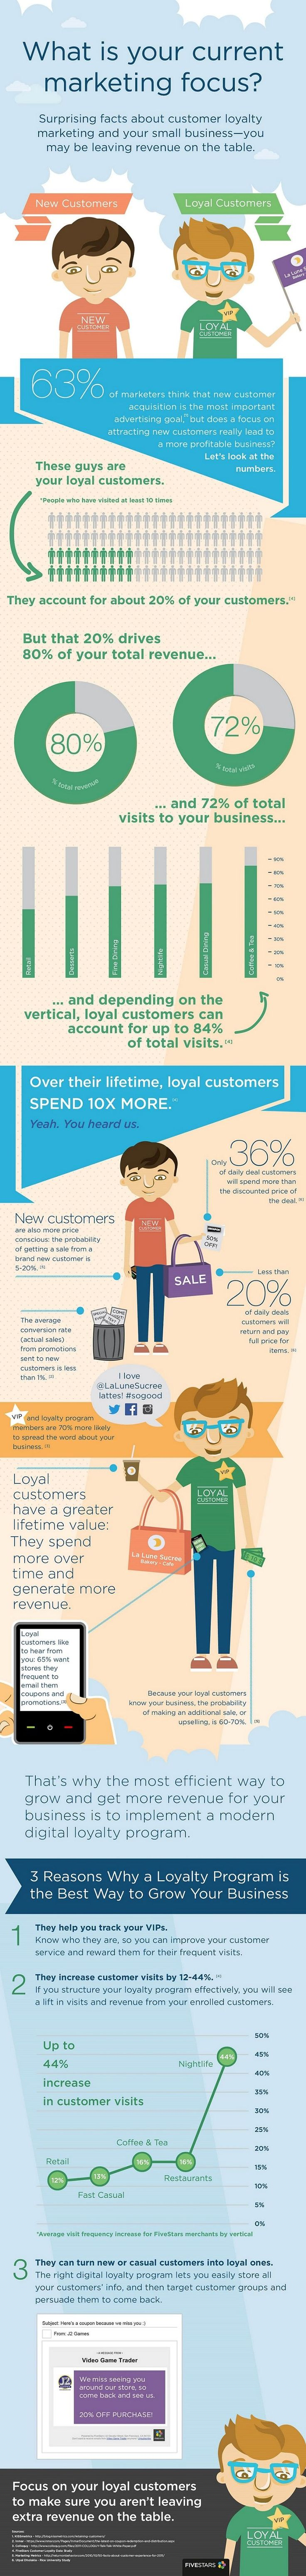 Customer Relationships - Surprising Facts About Customer Loyalty Marketing [Infographic] : MarketingProfs Article